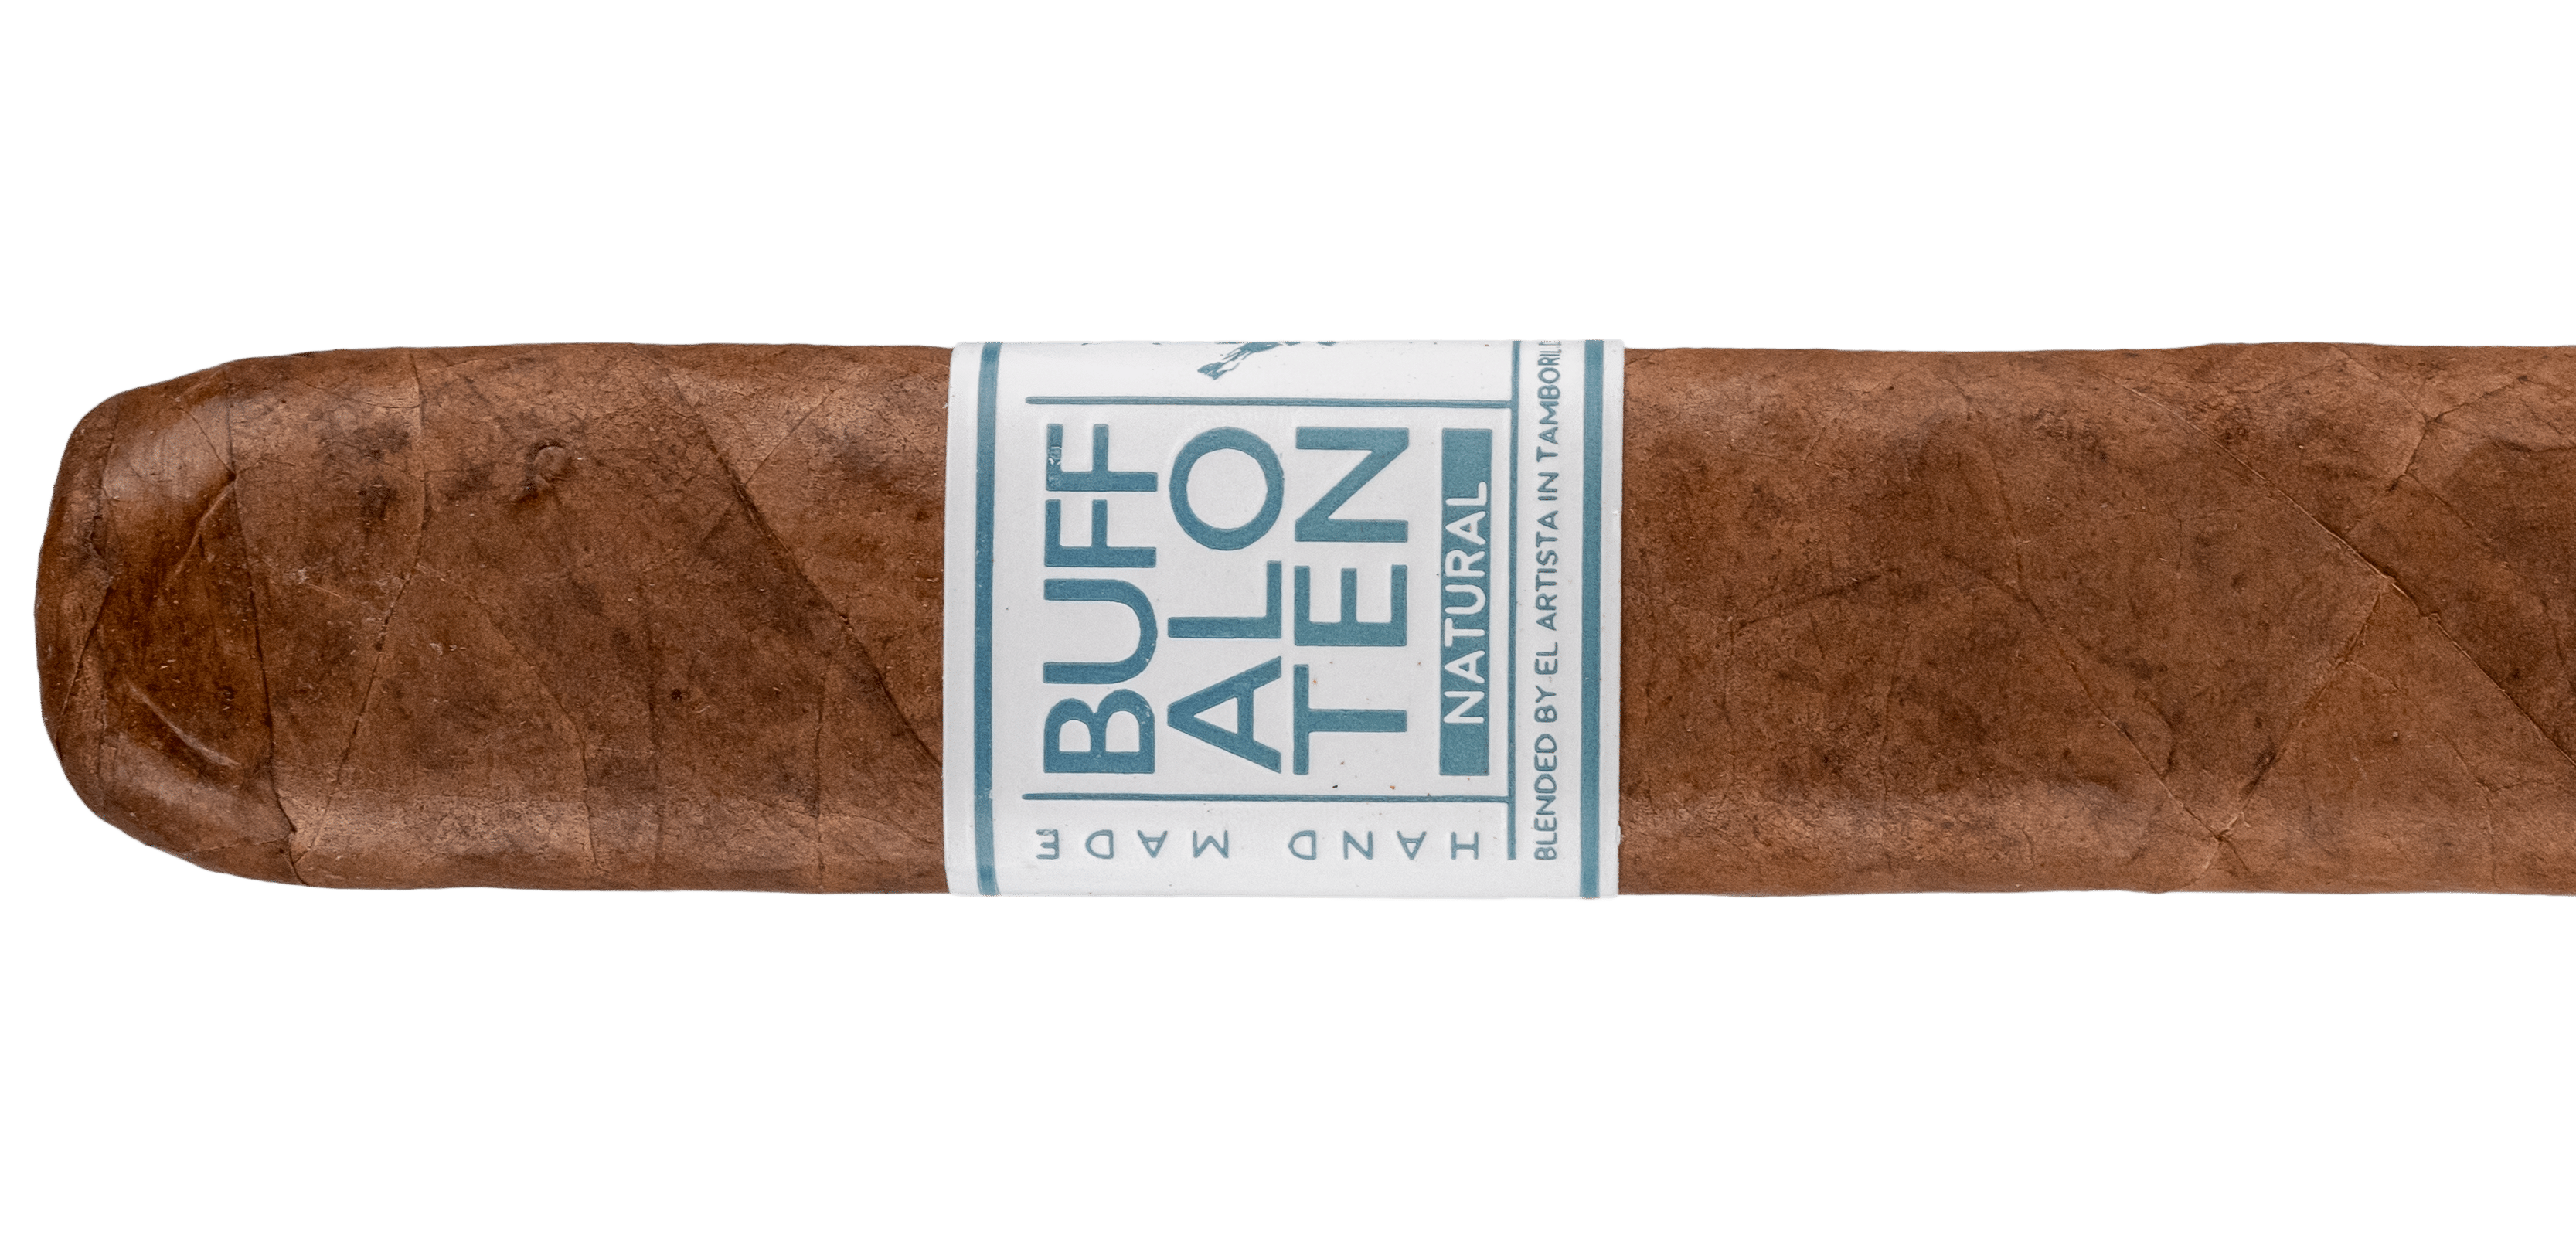 Blind Cigar Review: El Artista |Buffalo TEN Natural